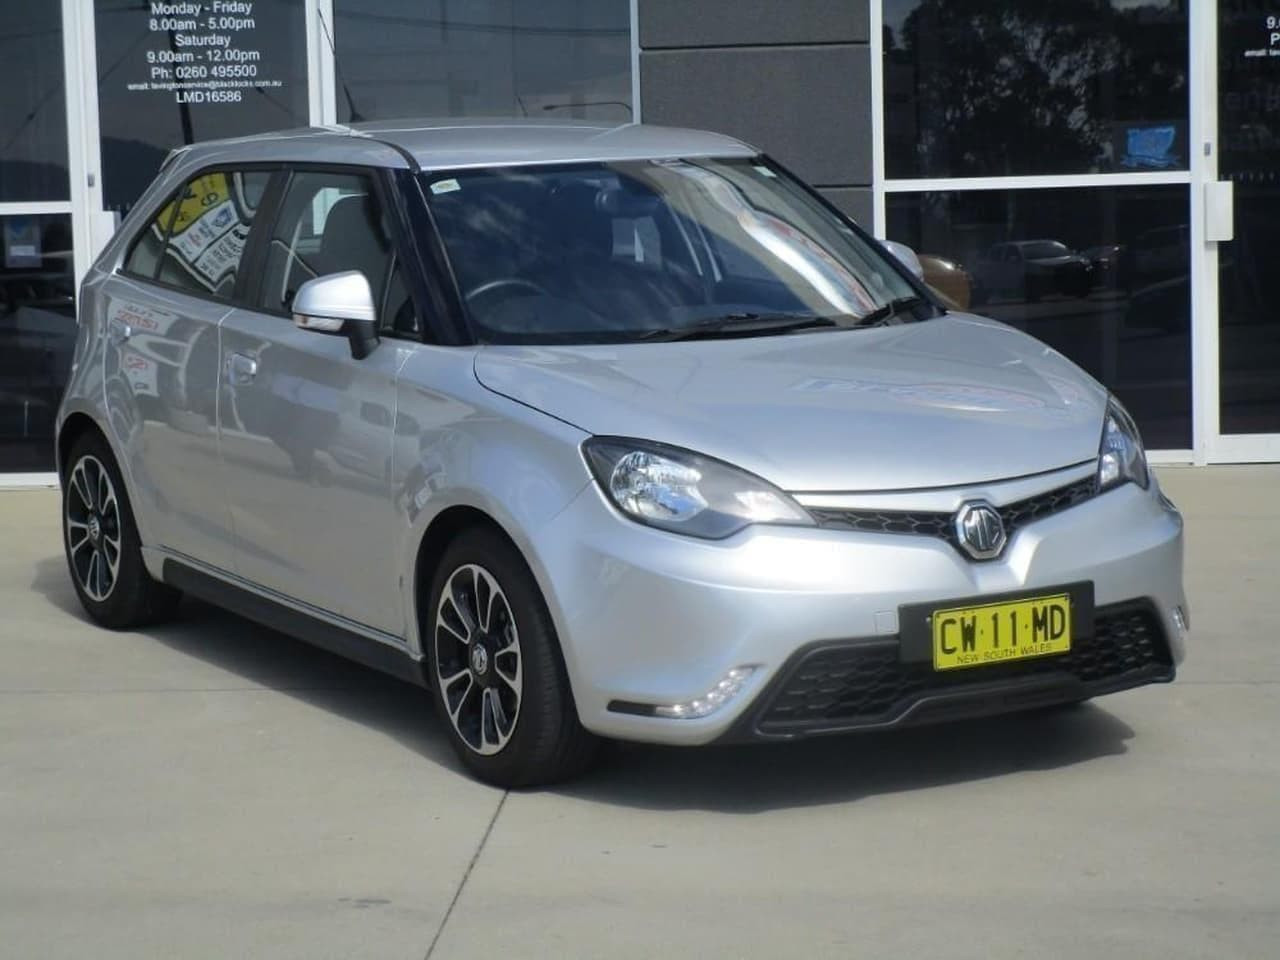 2017 MY18 MG MG3 SZP1 Excite Hatchback